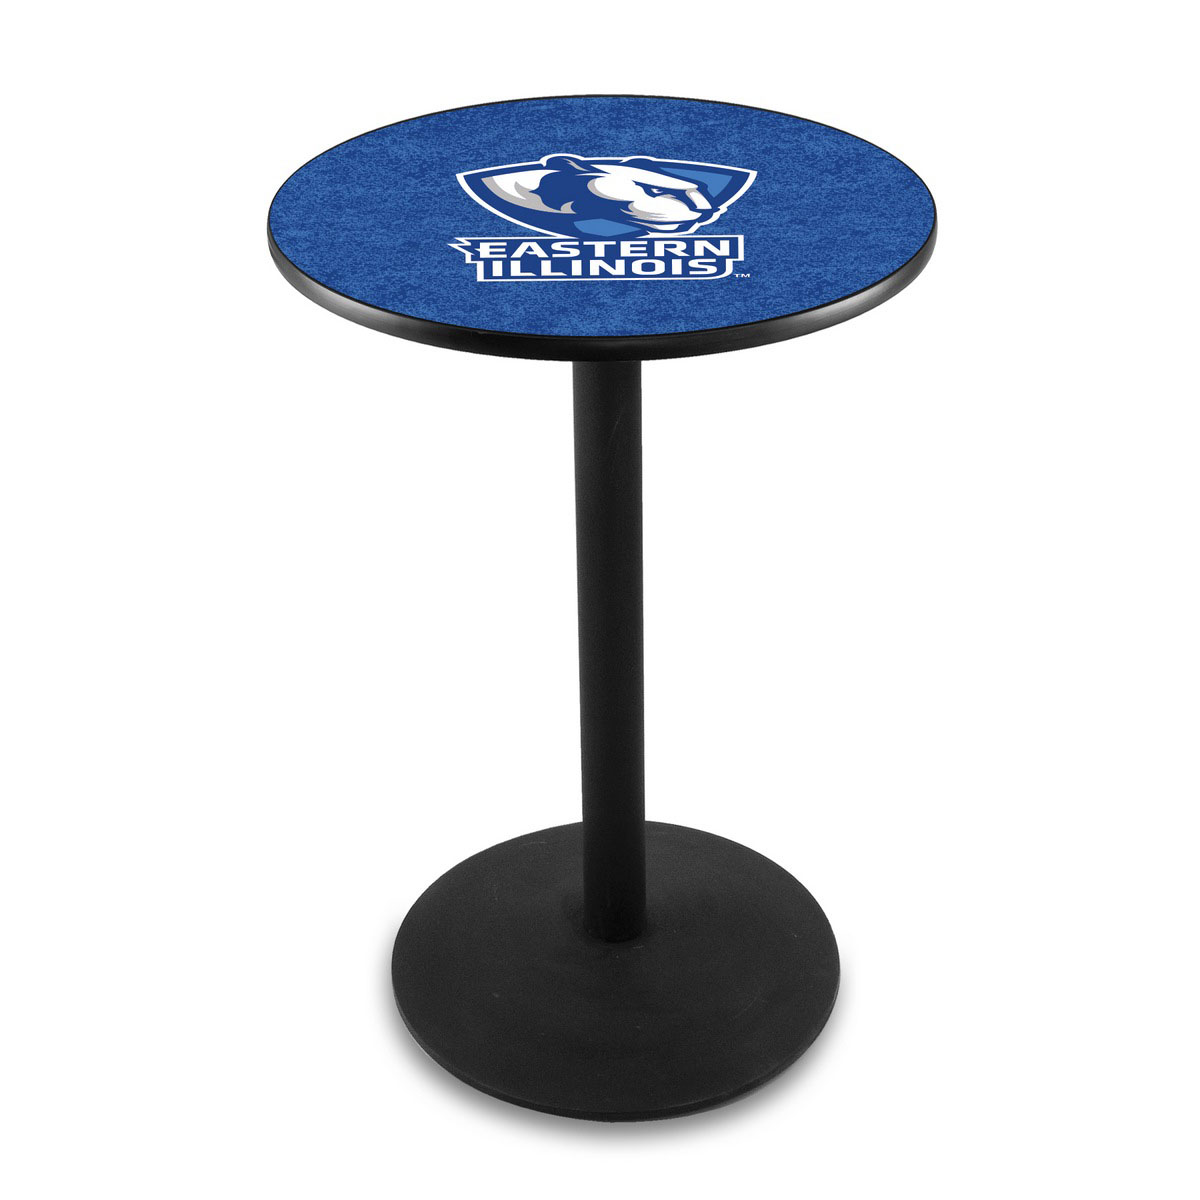 Outstanding Eastern Illinois University Logo Pub Bar Table Round Stand Product Photo